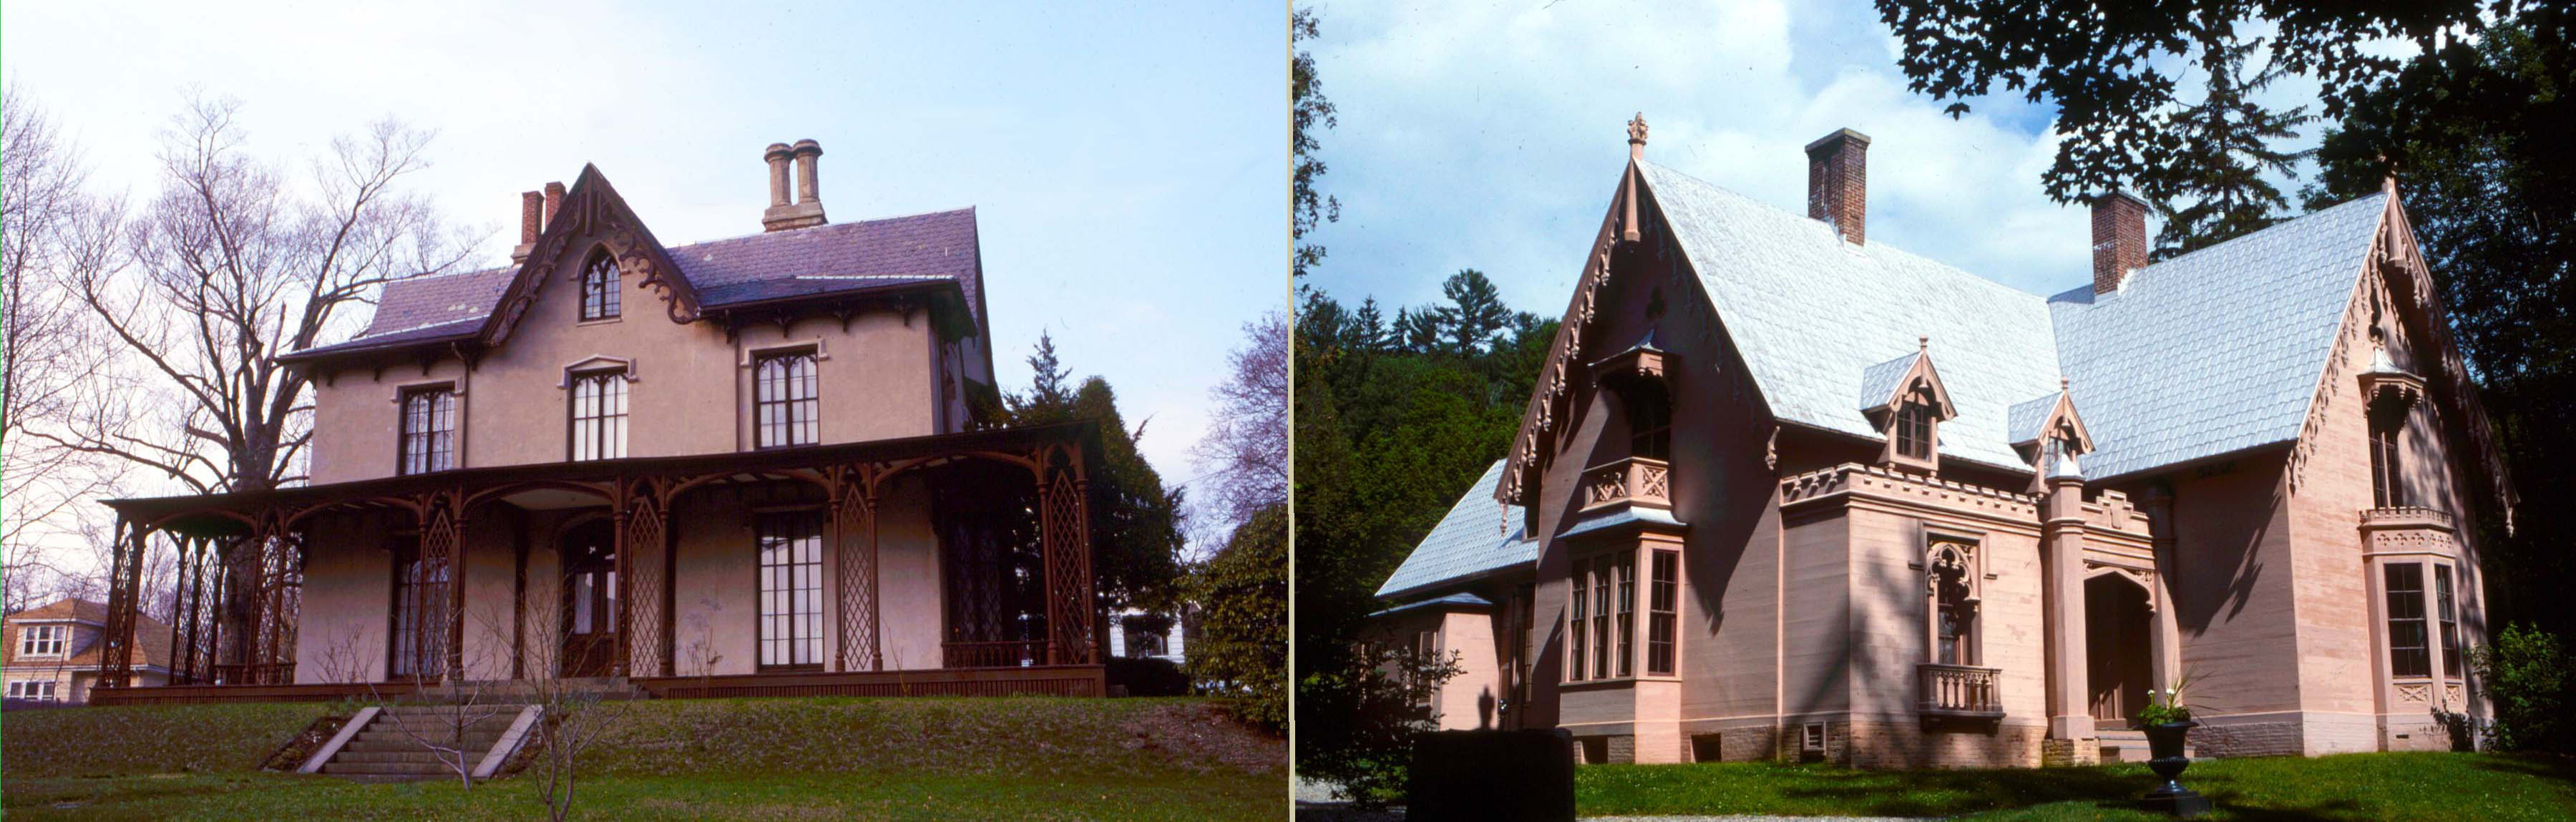 Carpenter Gothic with wood plank exterior in soft pink to resemble stone